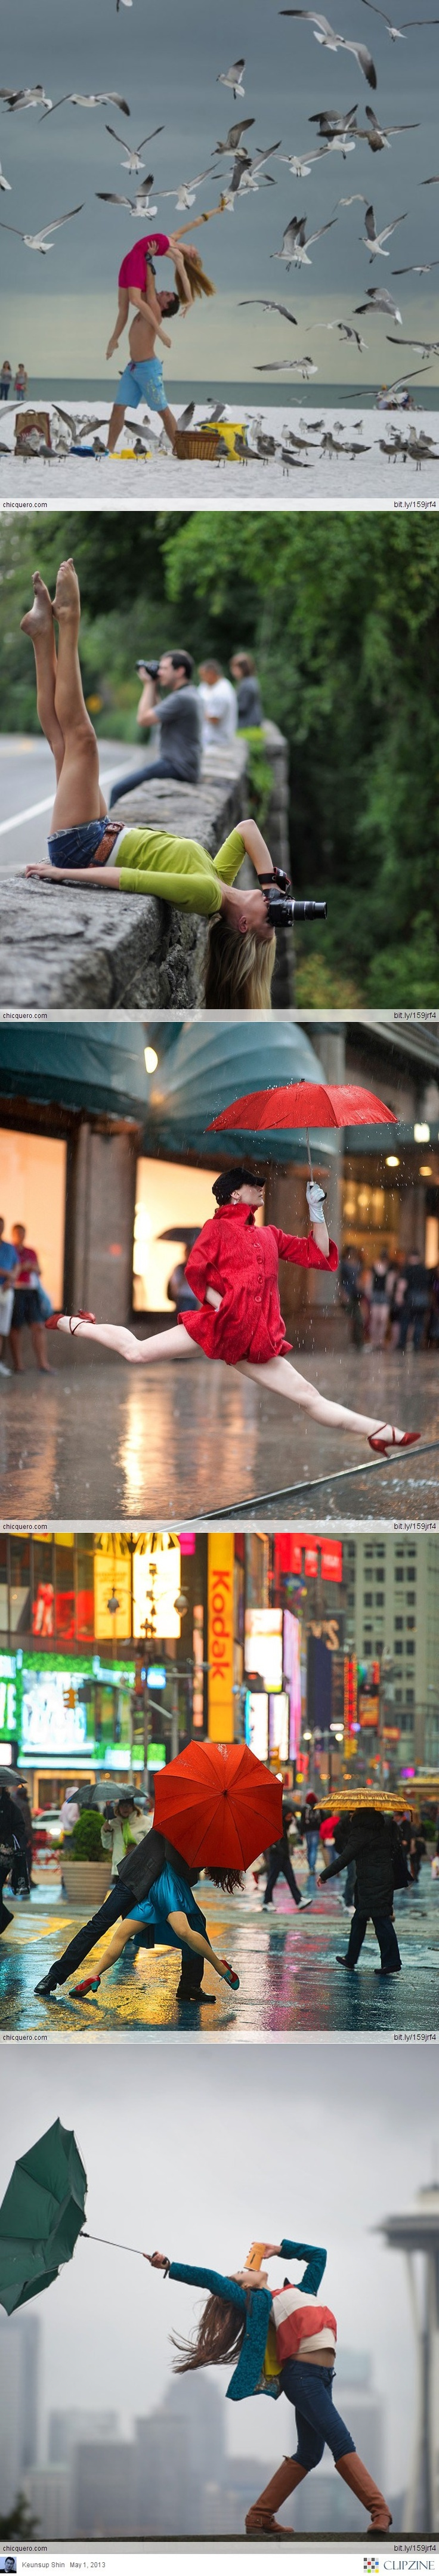 Dancers among us! Ive seen these before! They are amazing! I would love to work with this photographer!